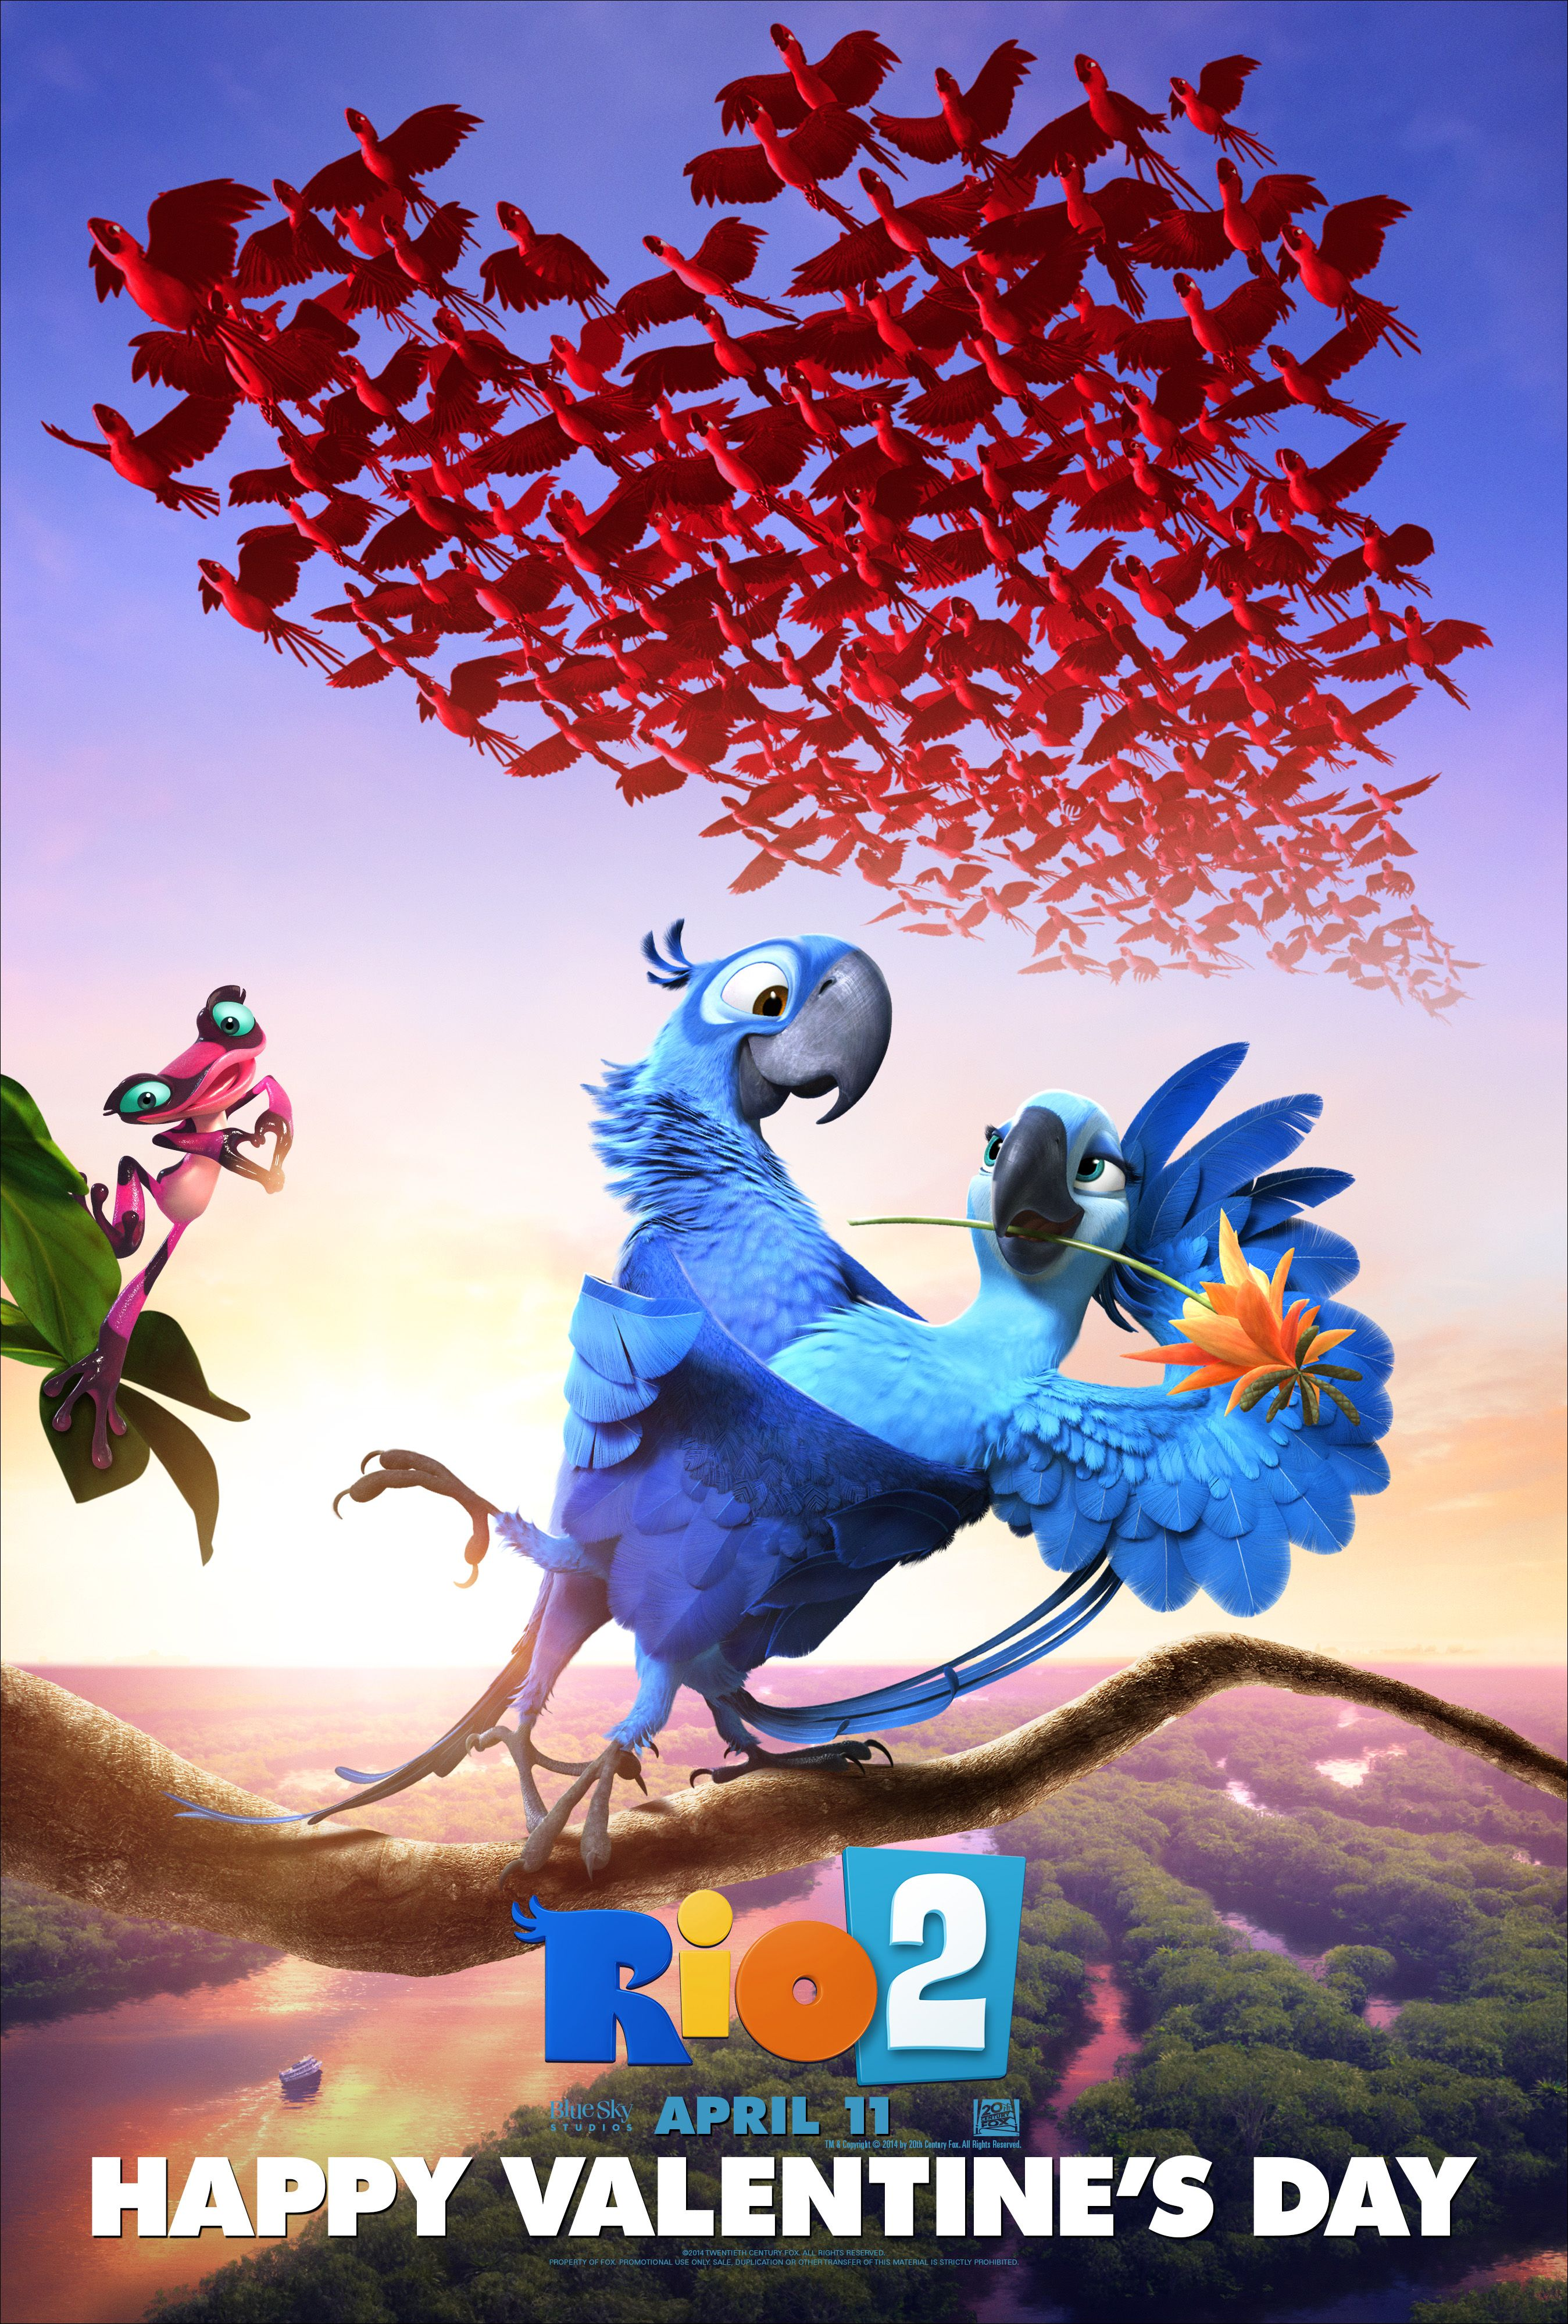 Roses Are Red Blu Isblue Happy Valentines Day From Rio 2